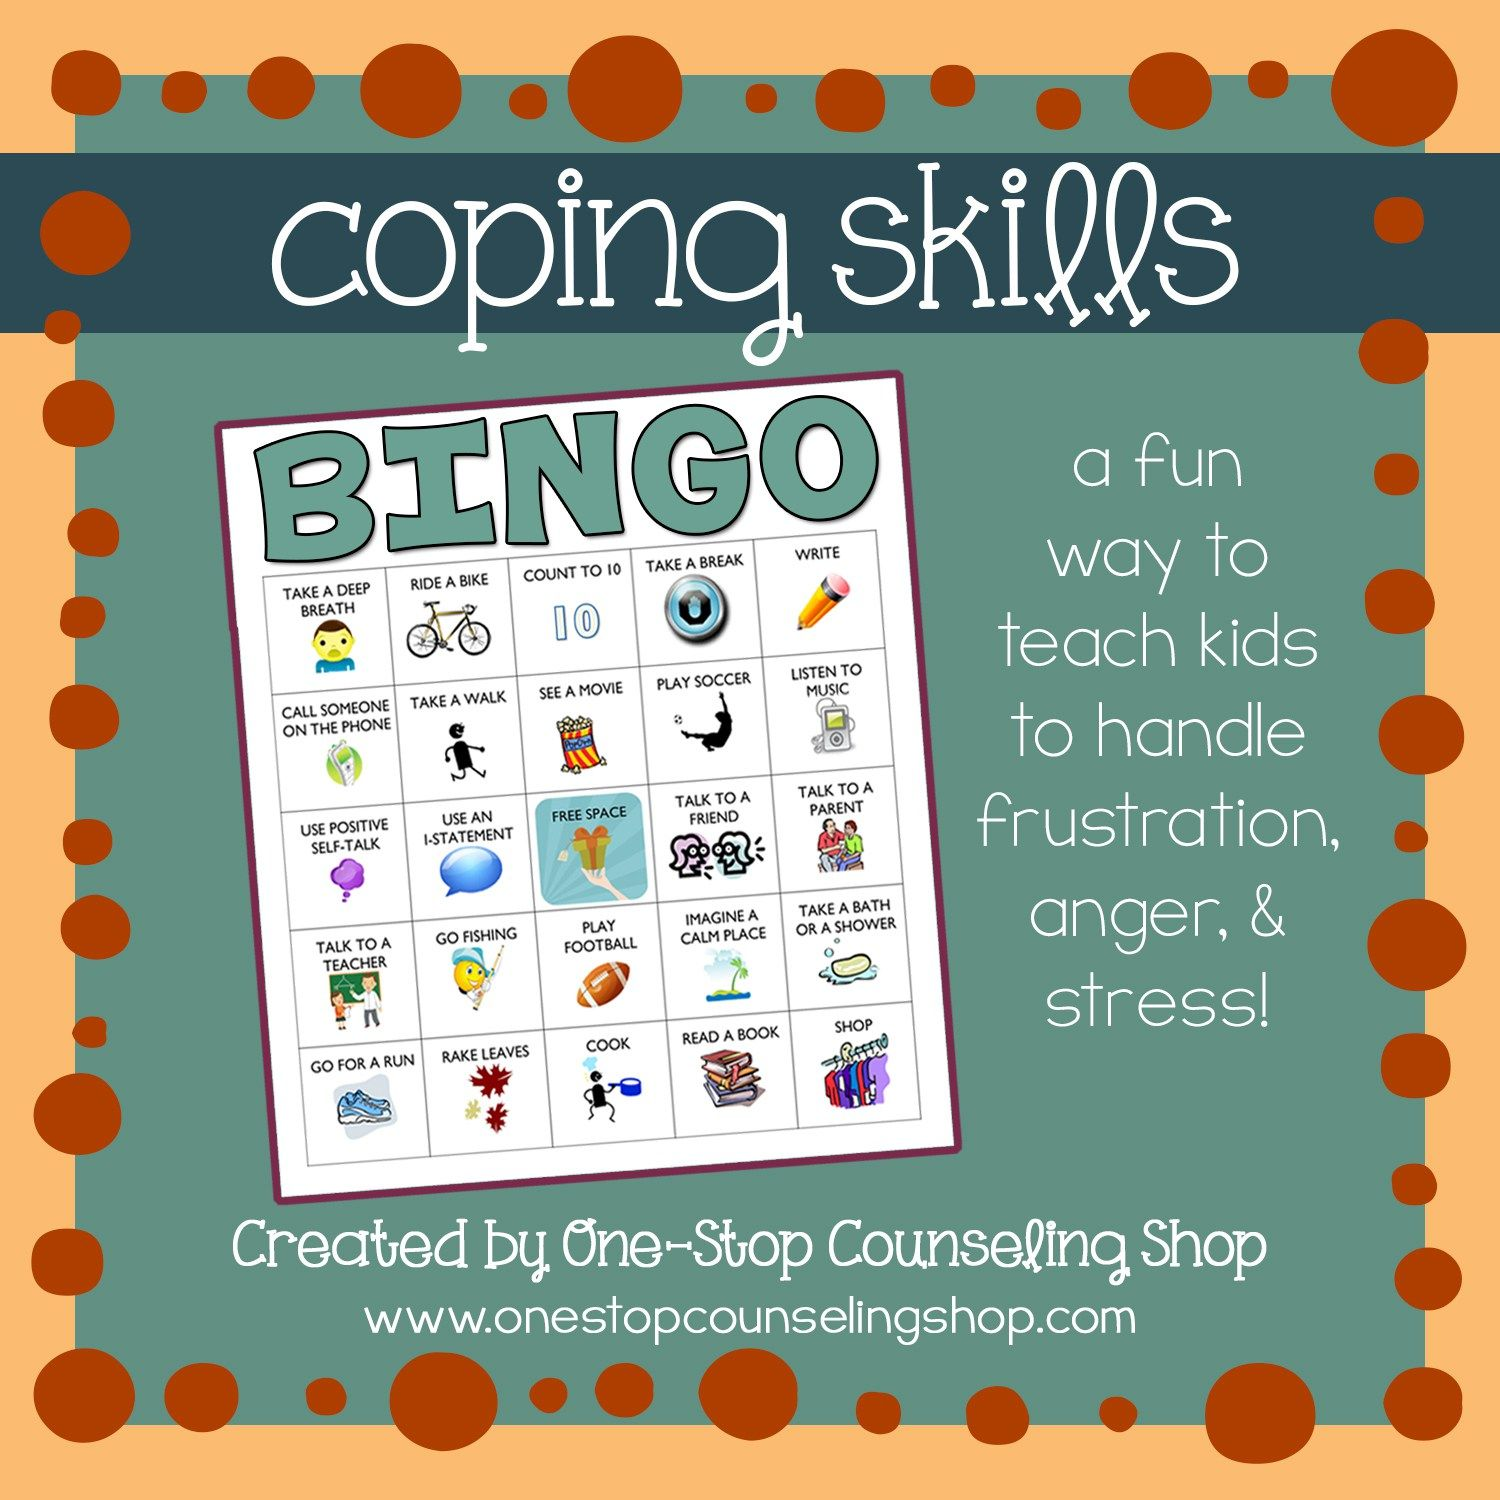 Worksheets Coping Skills Worksheets For Kids one of the lessons i find myself teaching constantly is about coping stress management worksheets infographic discover top seven skills designed to